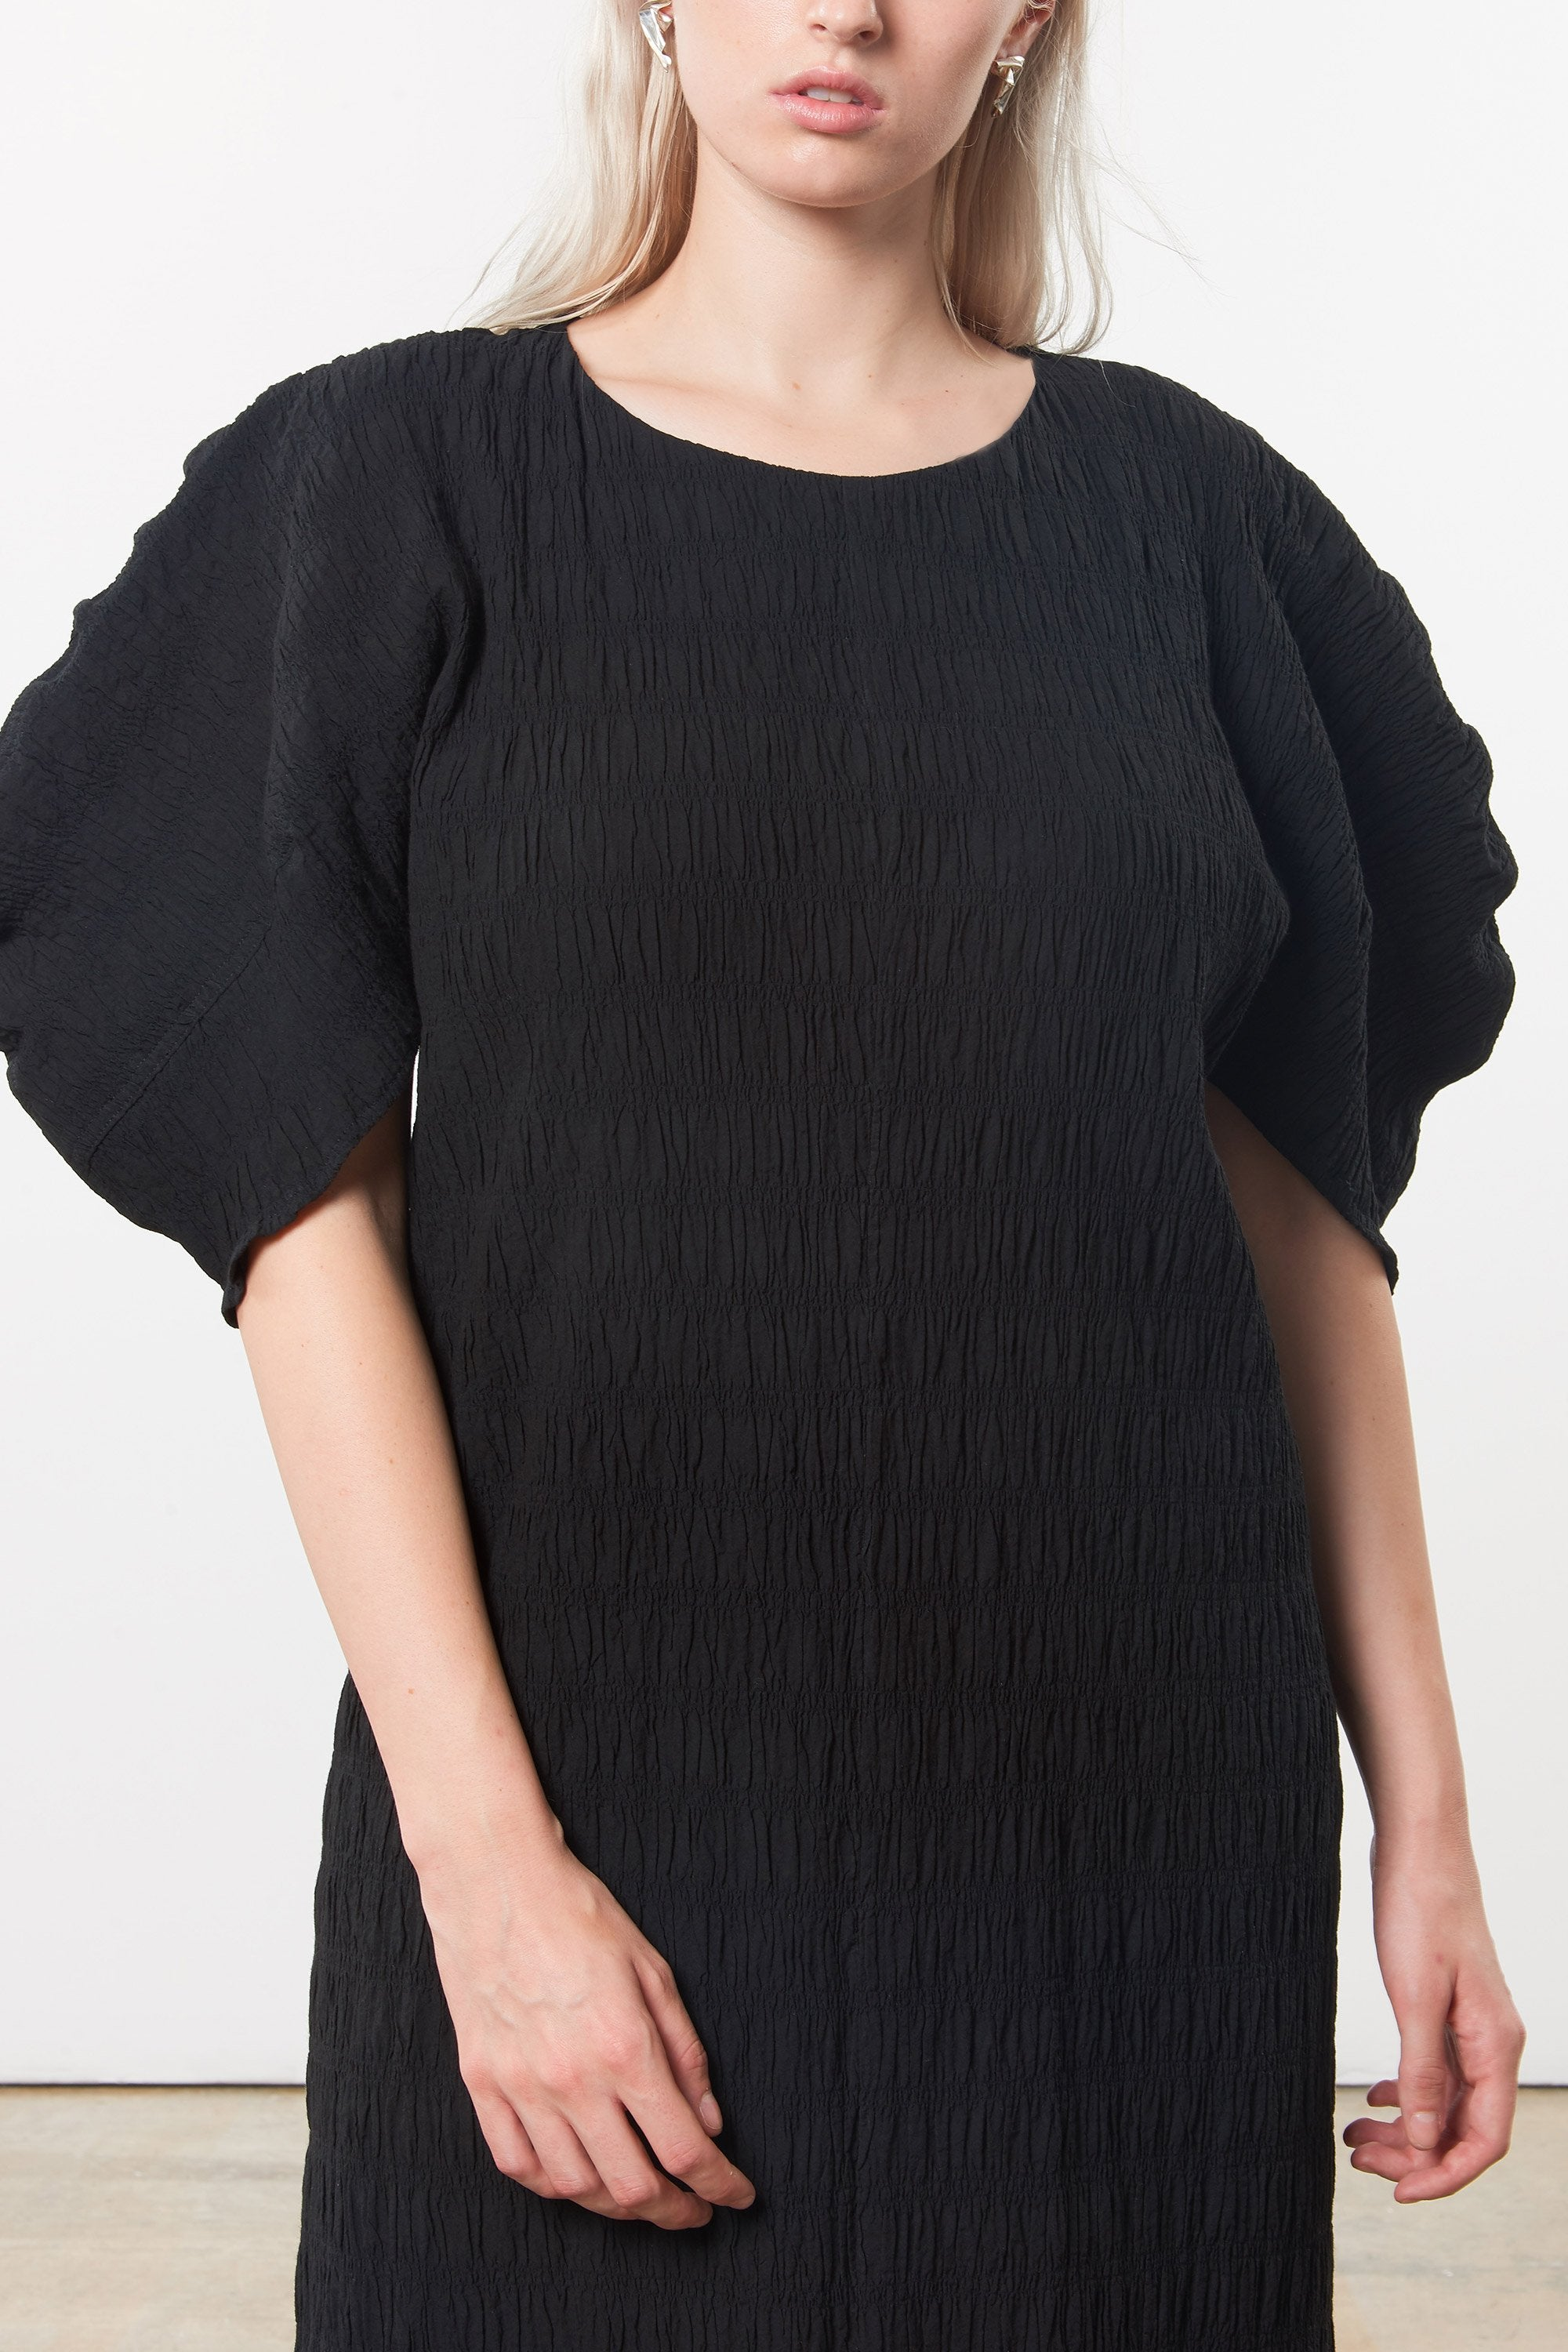 Mara Hoffman Extended Black Aranza dress in organic cotton (details)